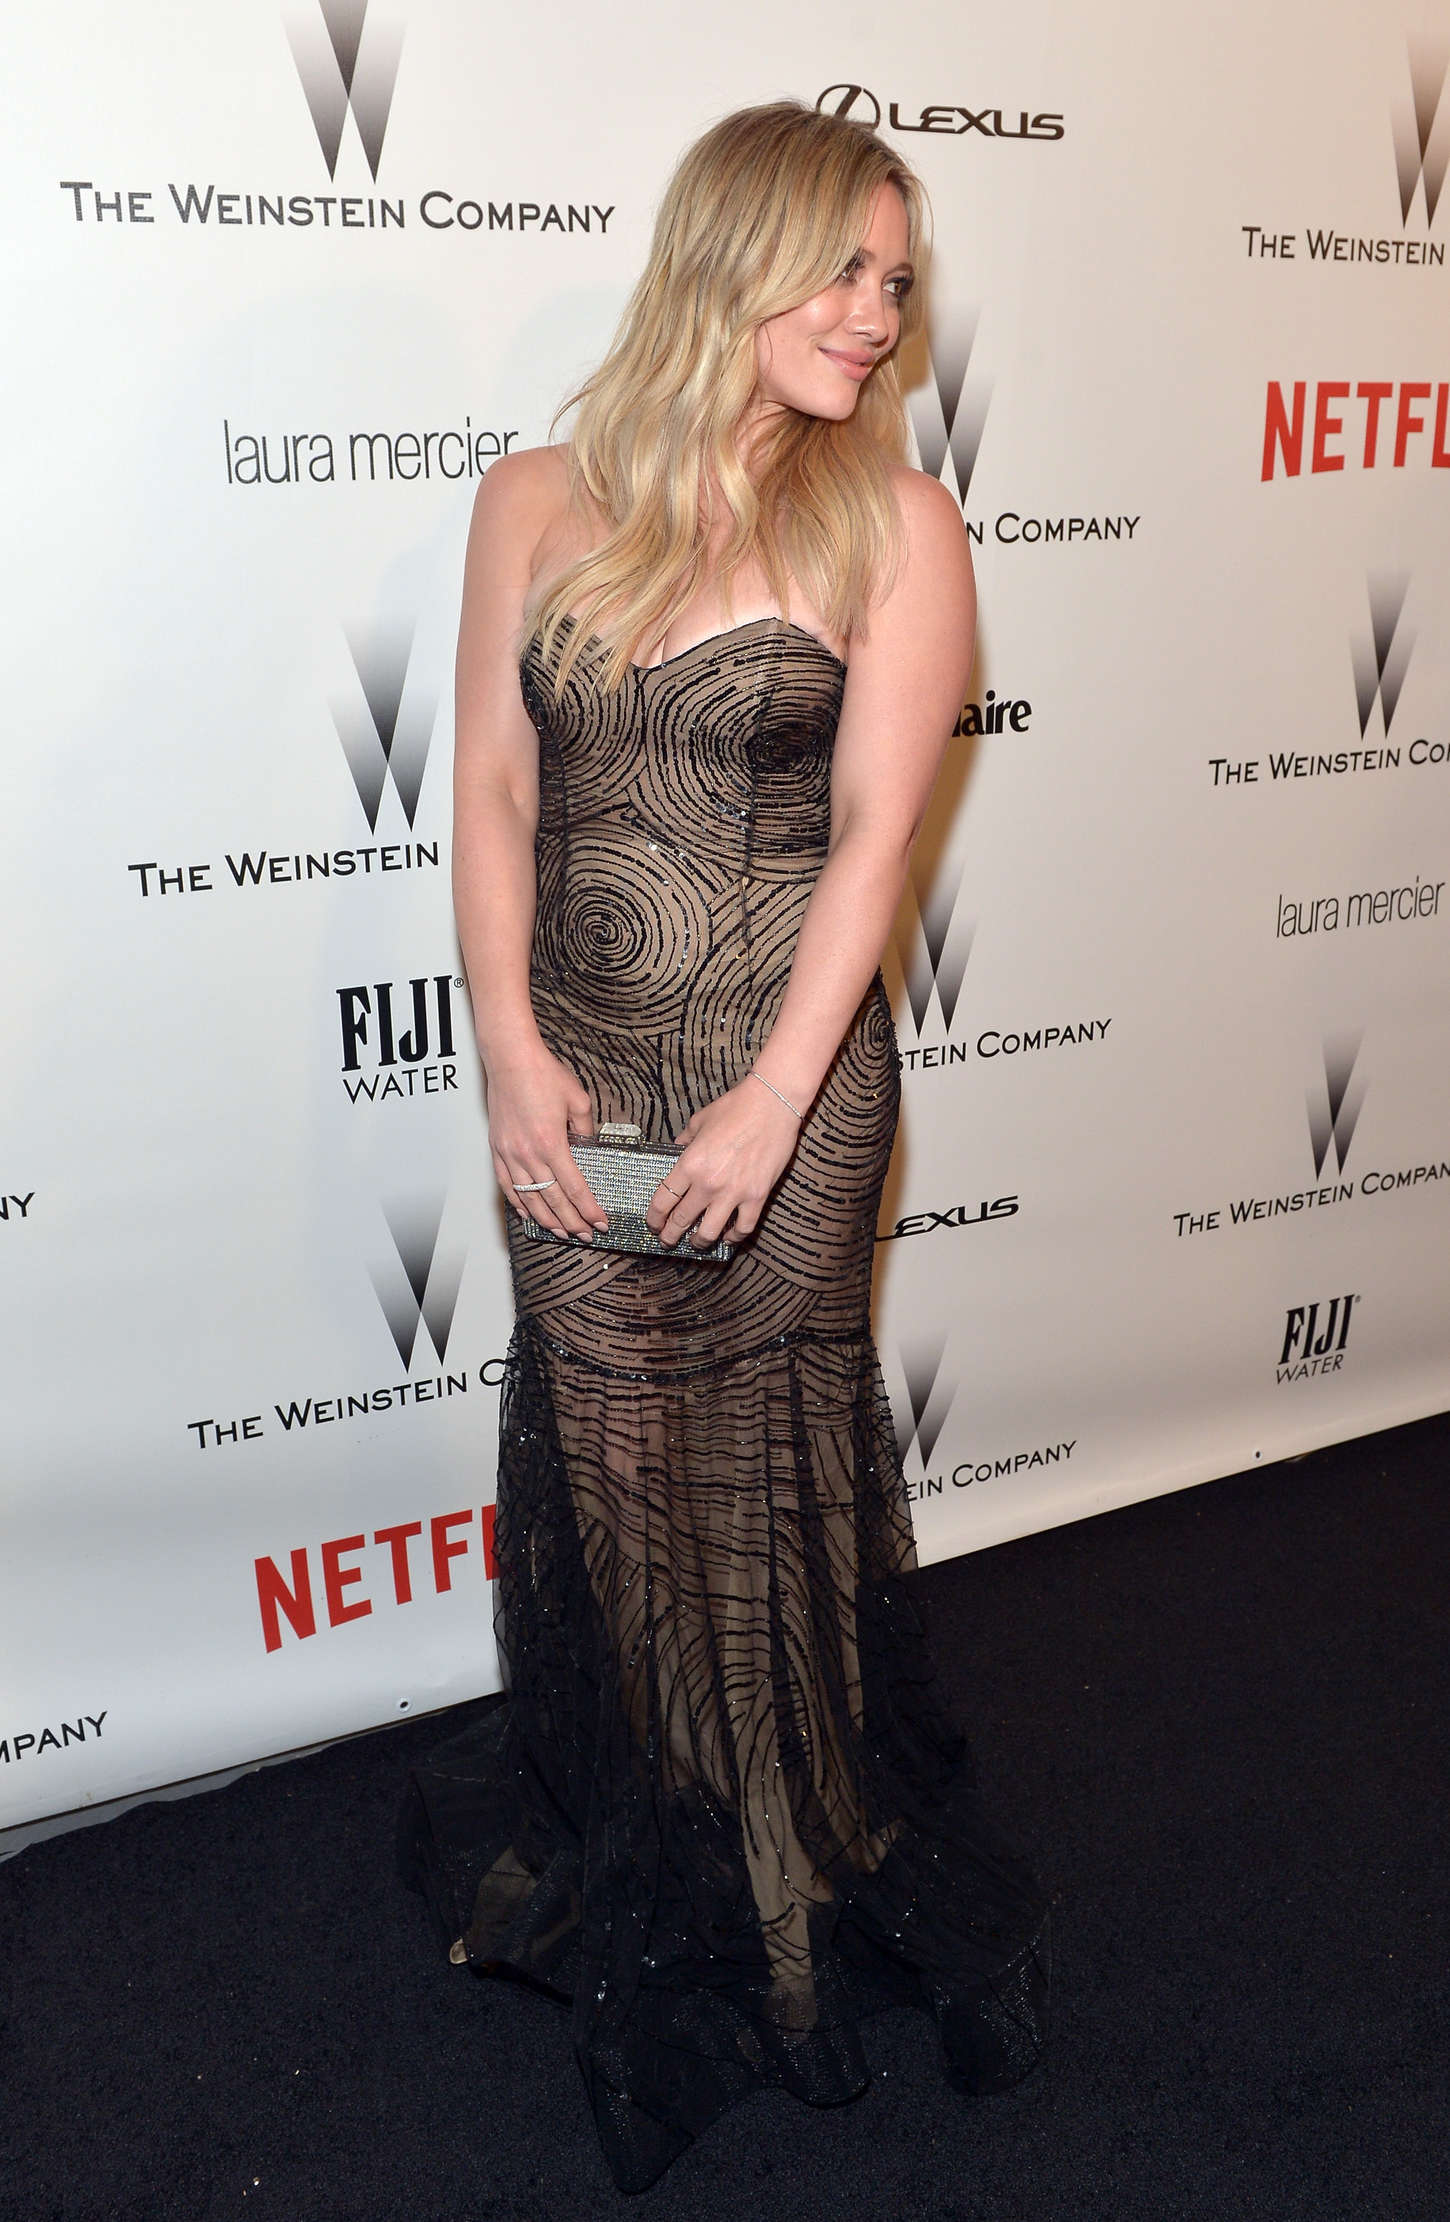 Hilary Duff 2015 : Hilary Duff: 2015 The Weinstein Company and Netflixs Golden Globes Party -03